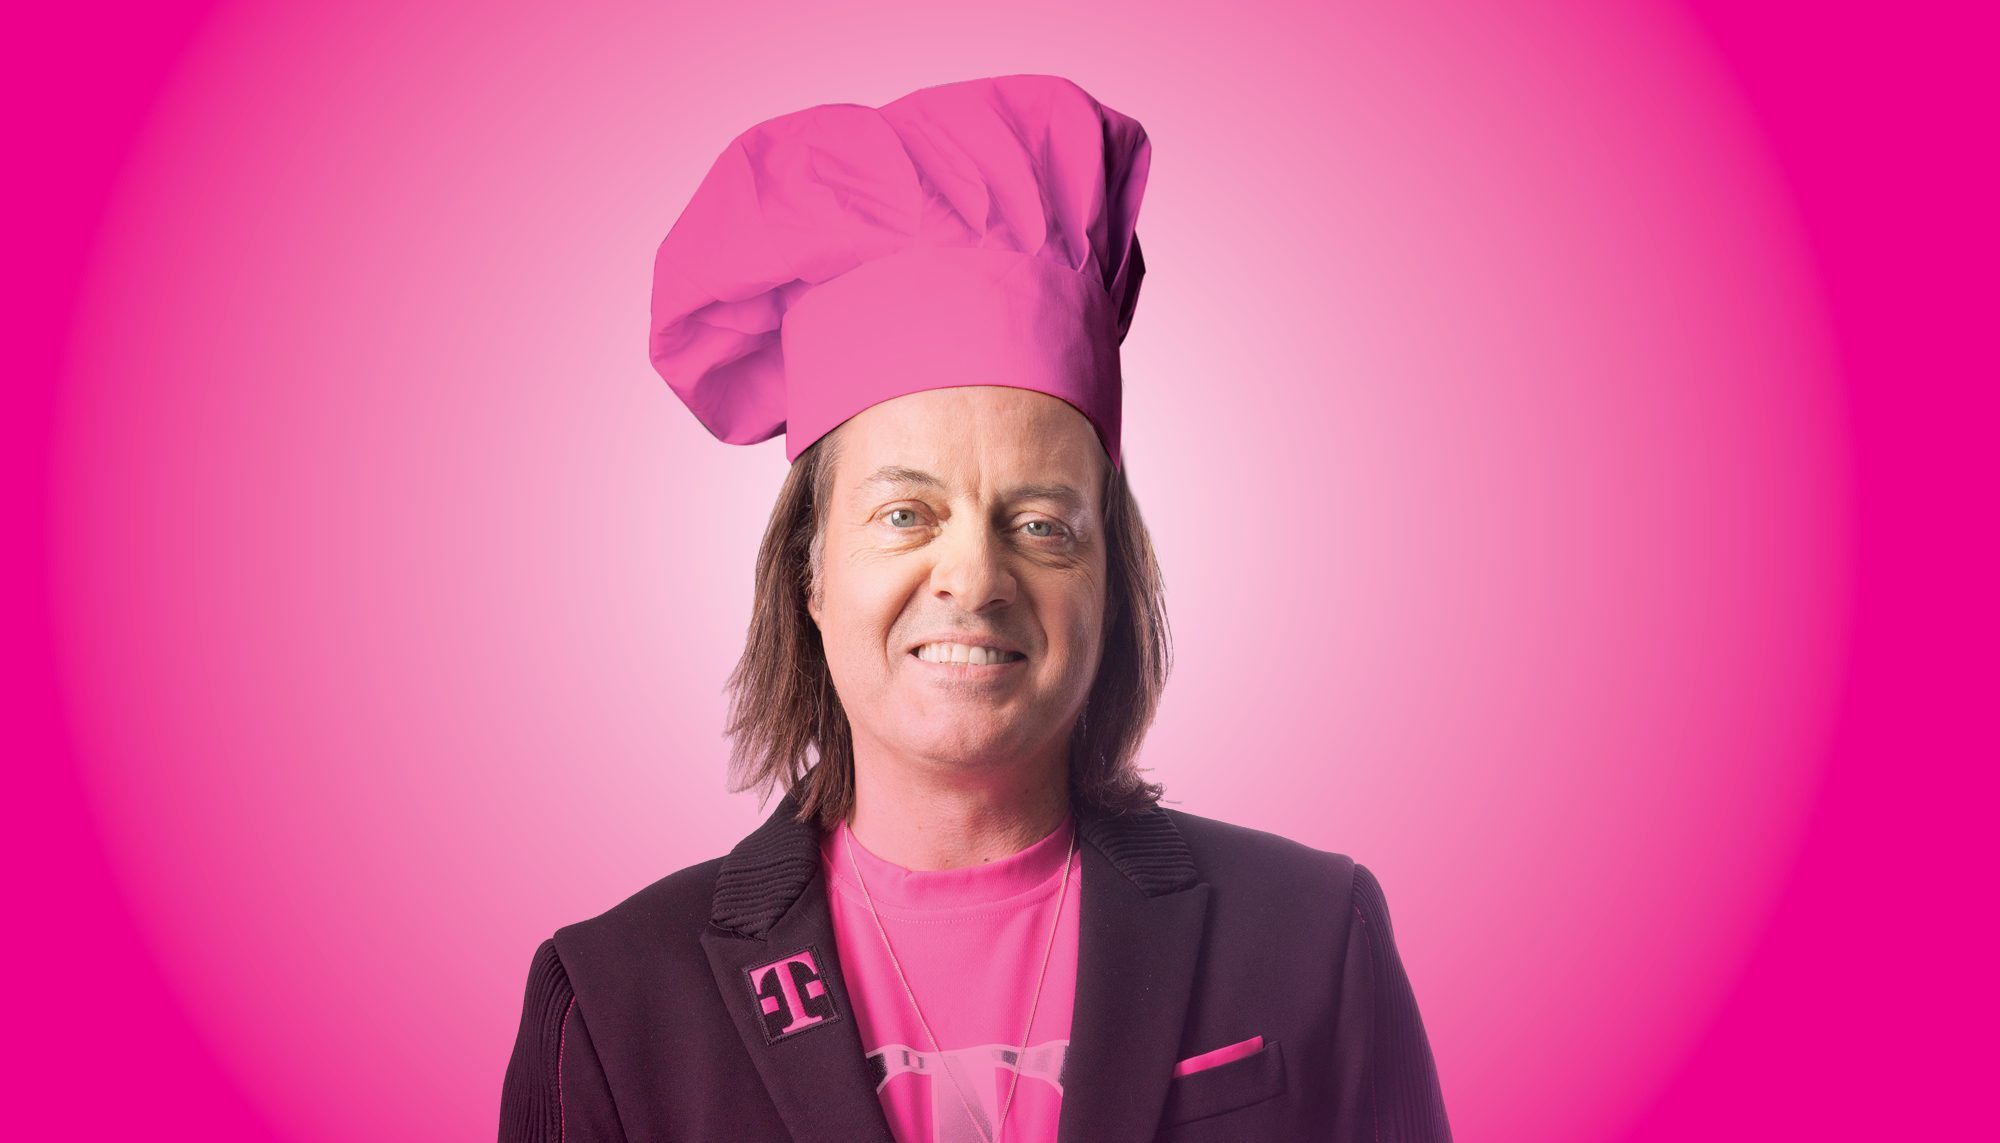 T Mobile Ceo John Legere Is Hosting His Own Cooking Show On